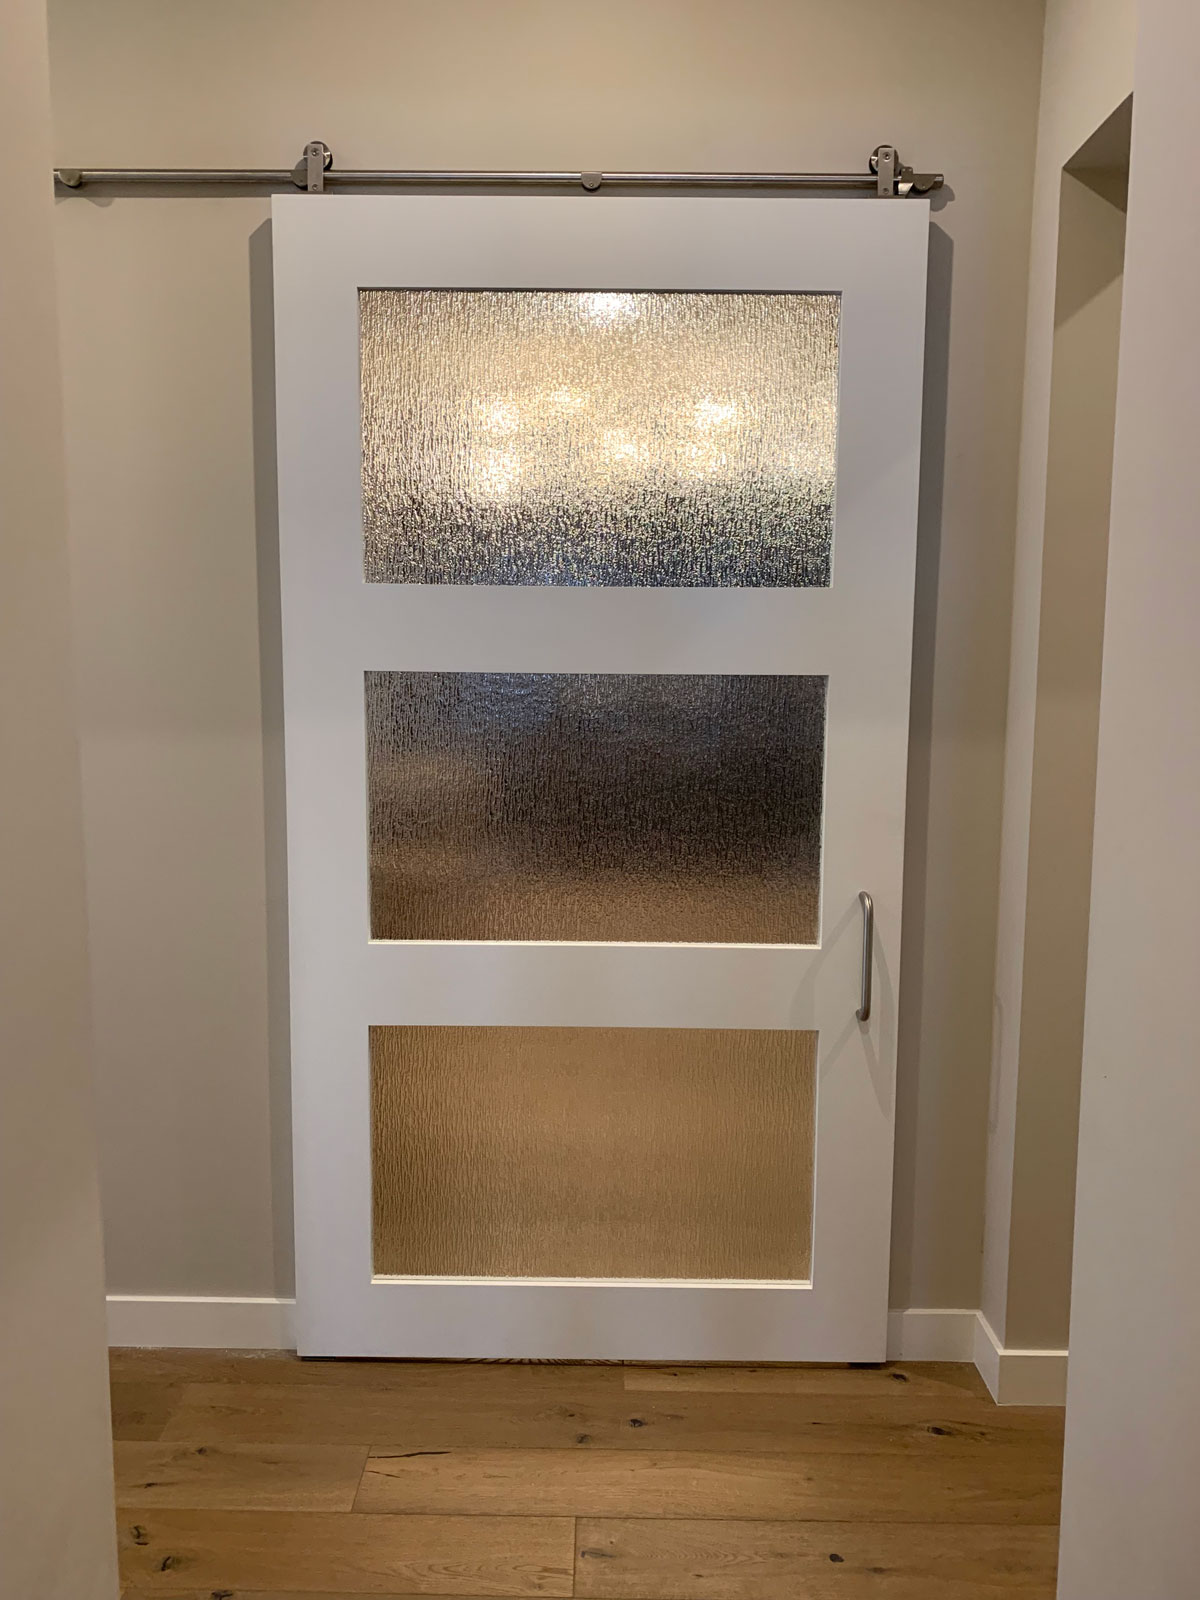 painted white shaker barn door with stainless steel hadware